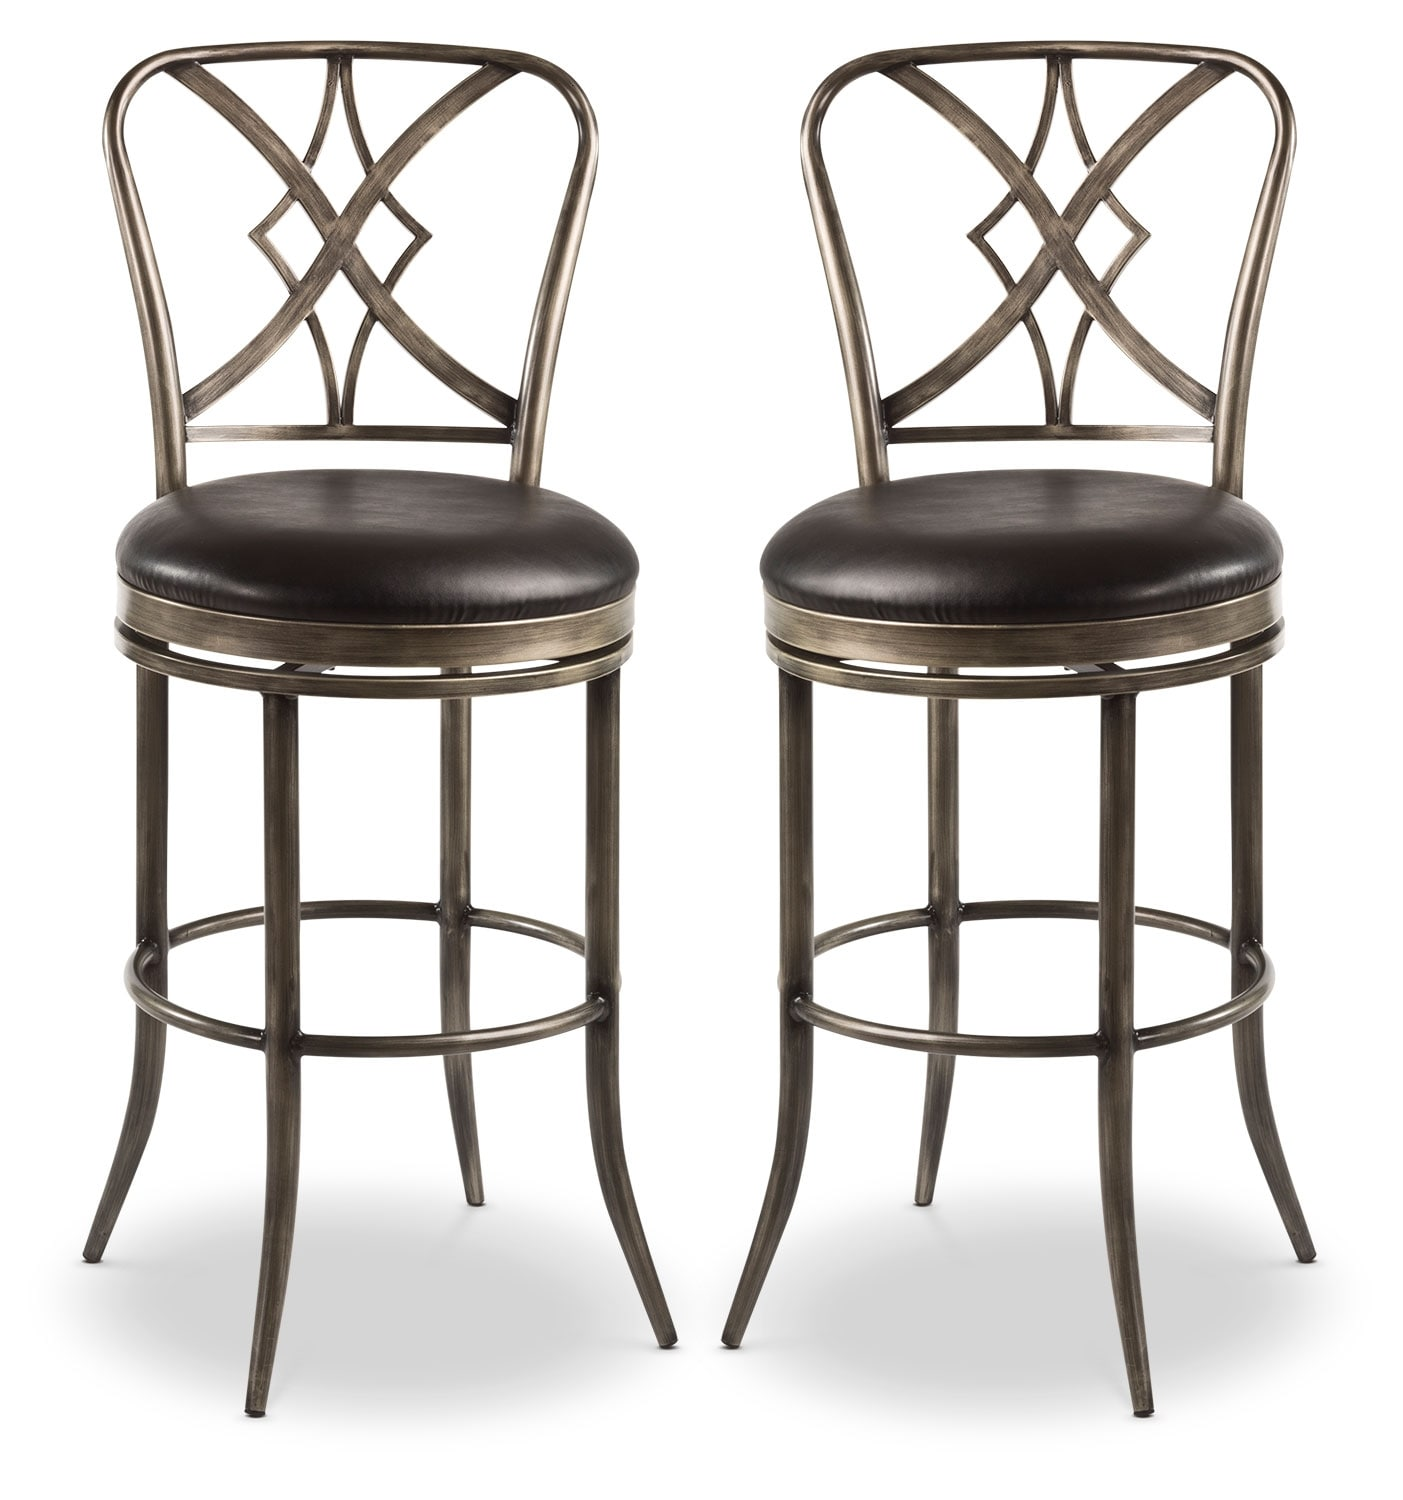 Jaqueline Counter-Height Swivel Stool – Set of 2